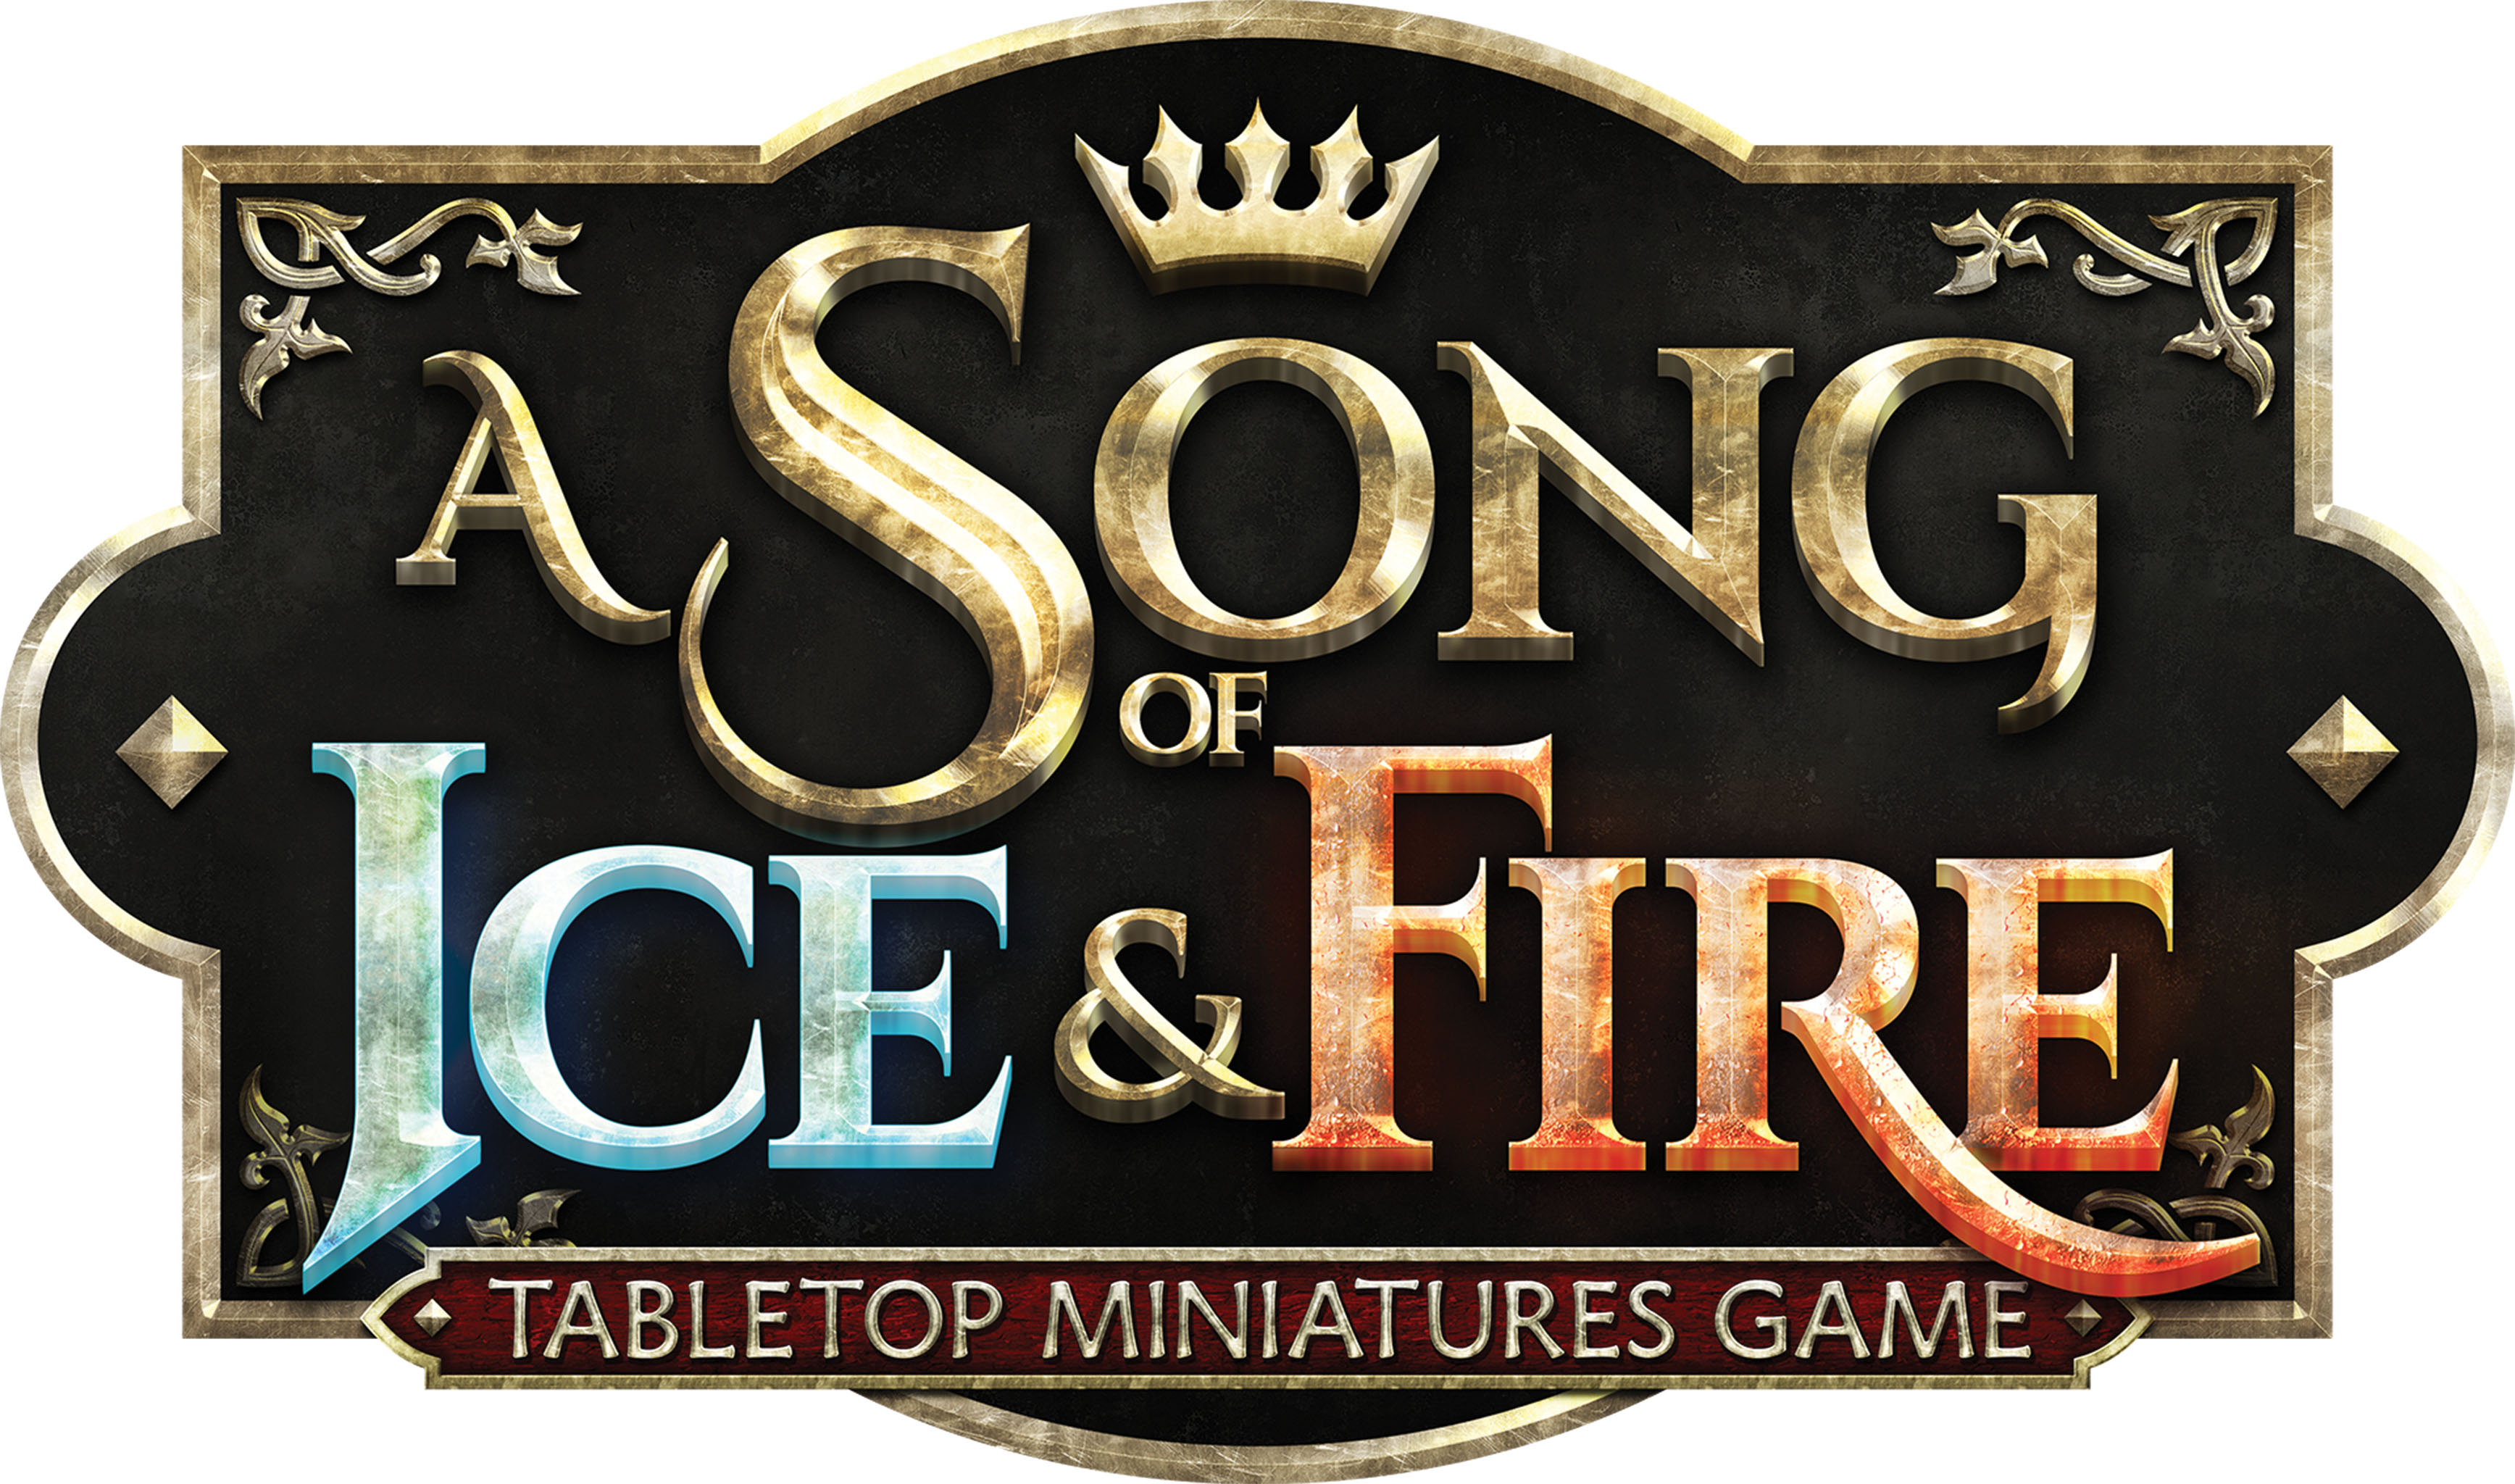 GTM #223 - A Song of Ice & Fire Miniatures Game